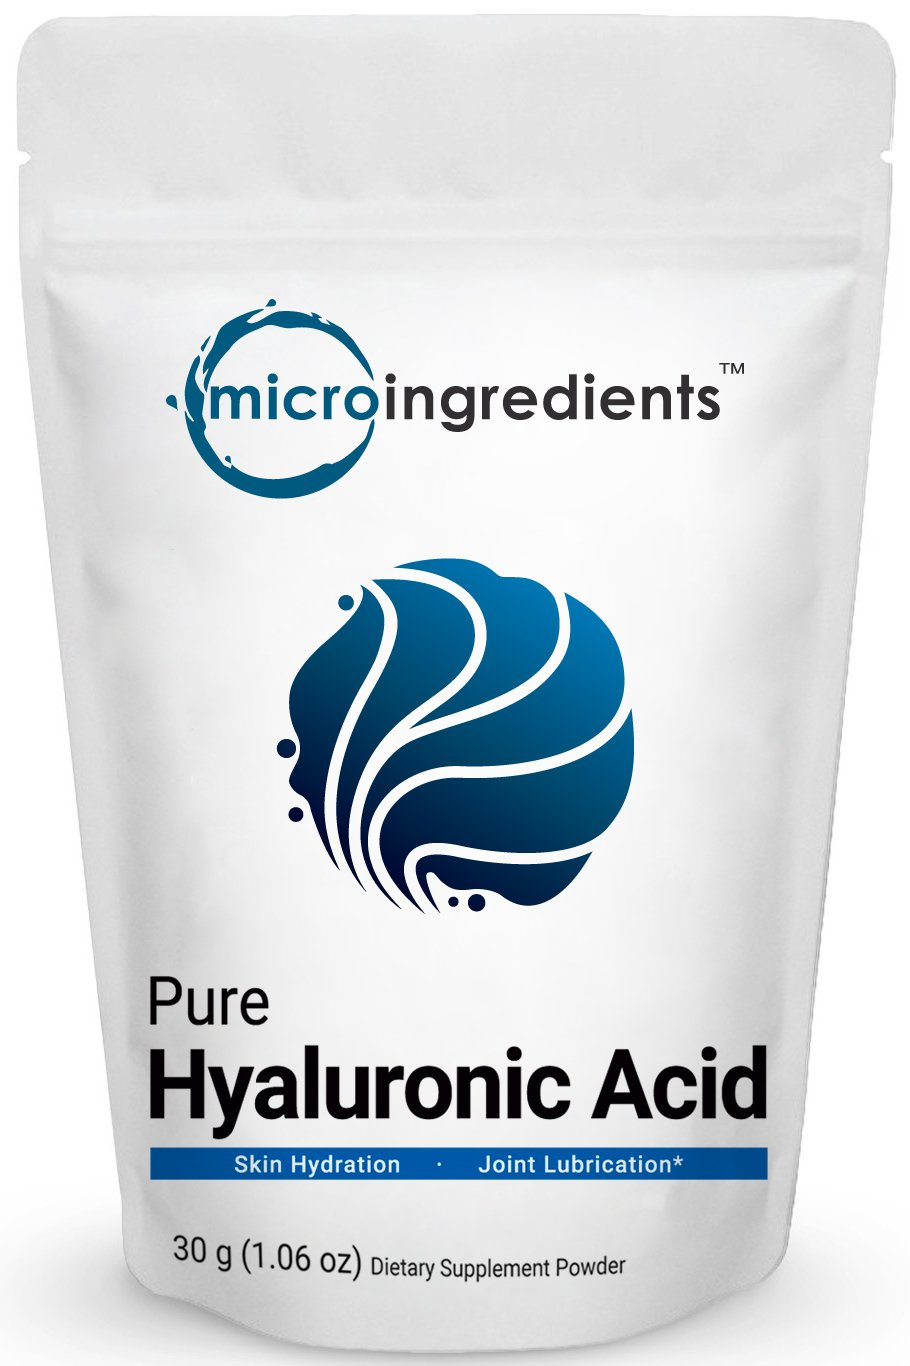 Purest Hyaluronic Acid Powder, For Making Anti-Aging Serum, Supporting Internal Hydration & Joint Health, 30 Grams. Non-Irradiated, Non-Contaminated and Non-GMO. Vegan Friendly.